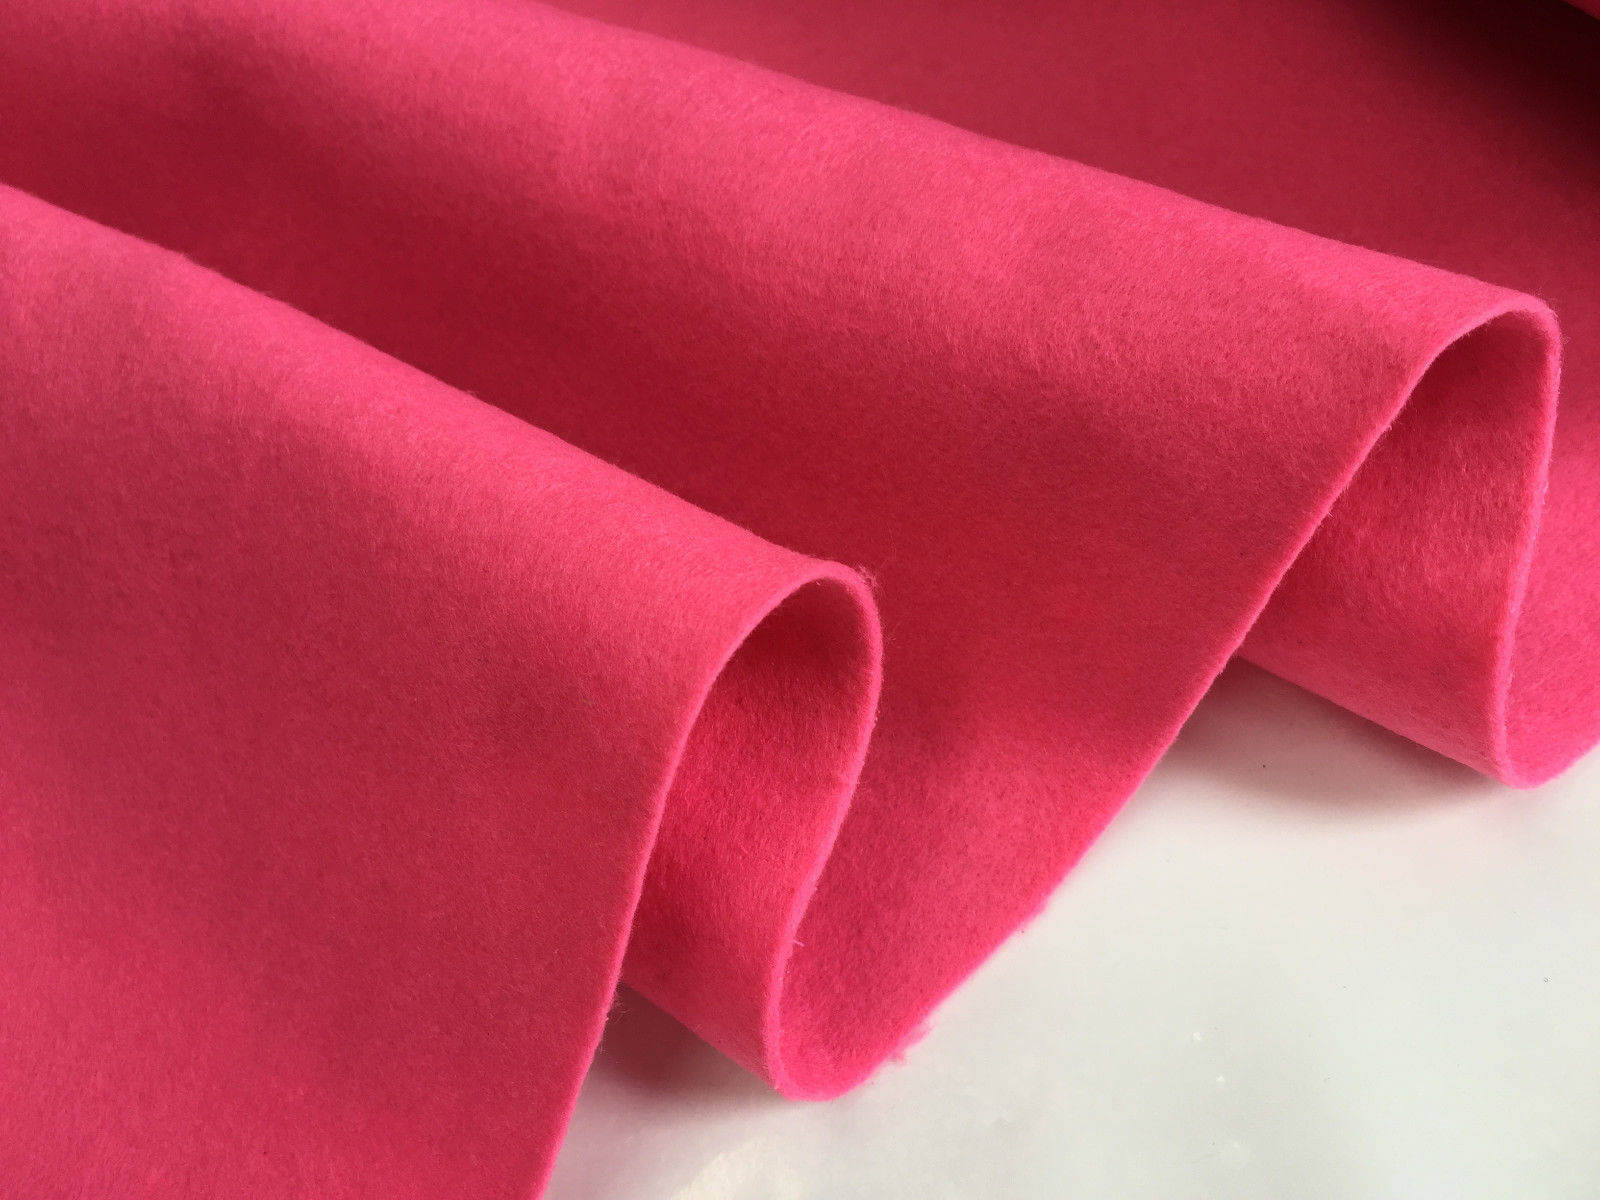 felt-fabric-material-craft-plain-colours-polyester-102cm-wide-pink-5ace64121.jpg